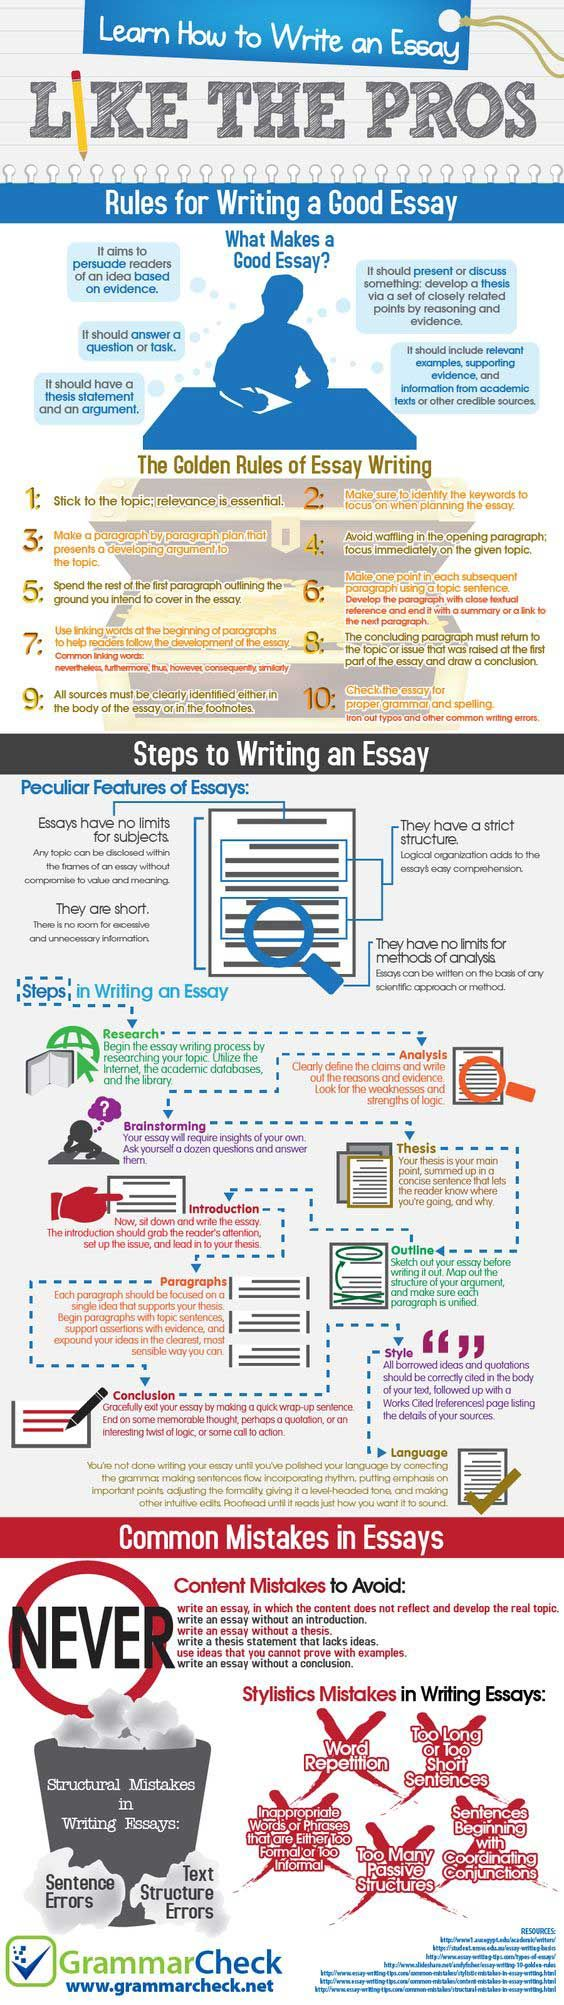 formal letter essay example pmr